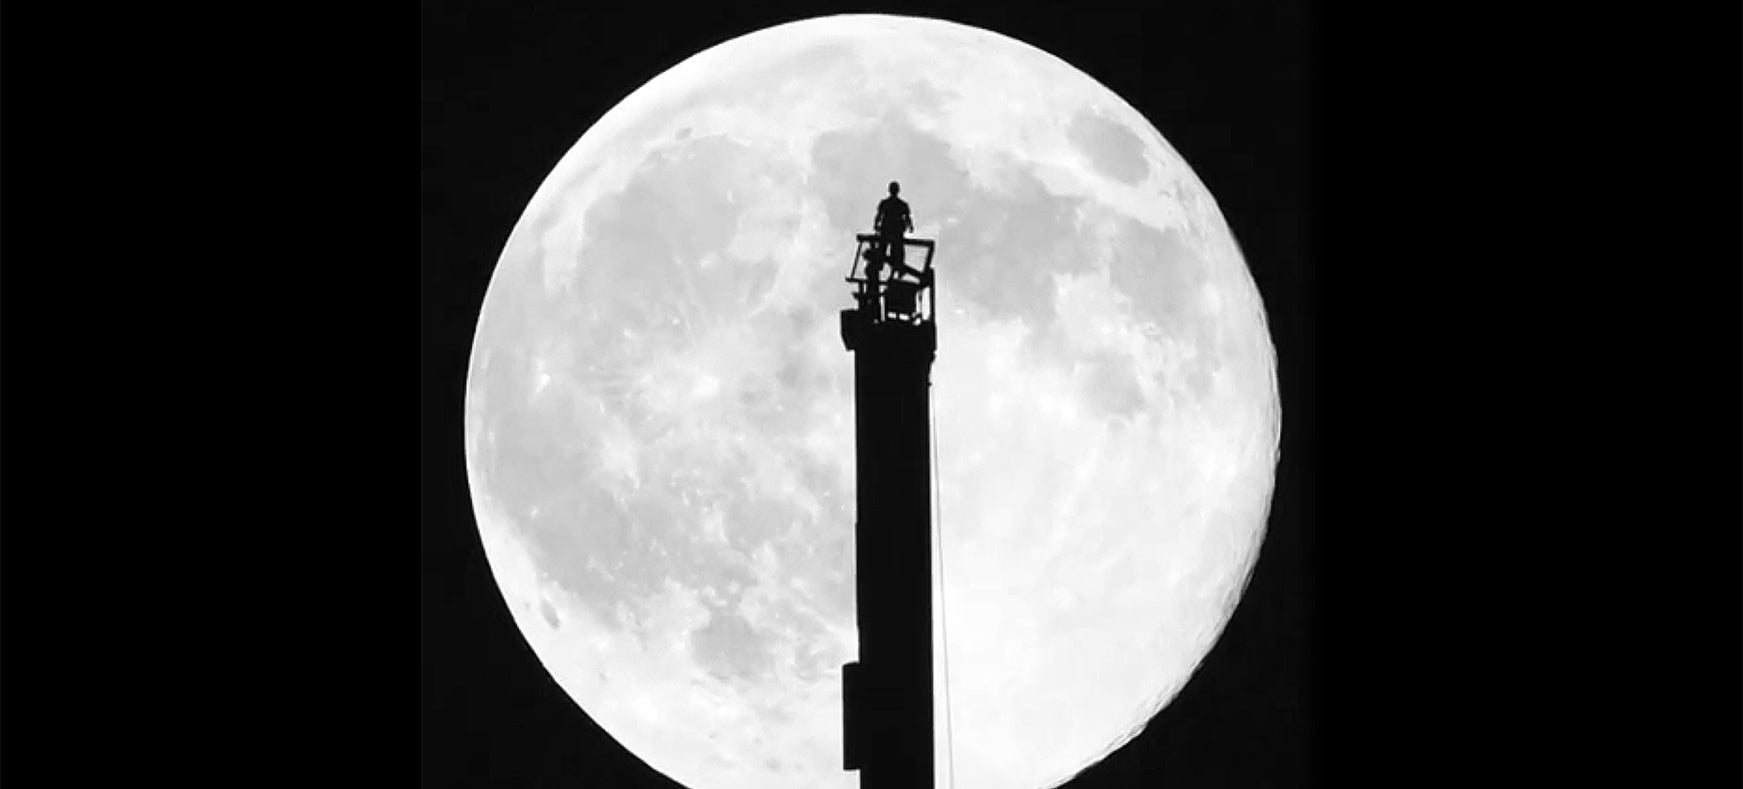 Spectacular video of the supermoon from the world's tallest building